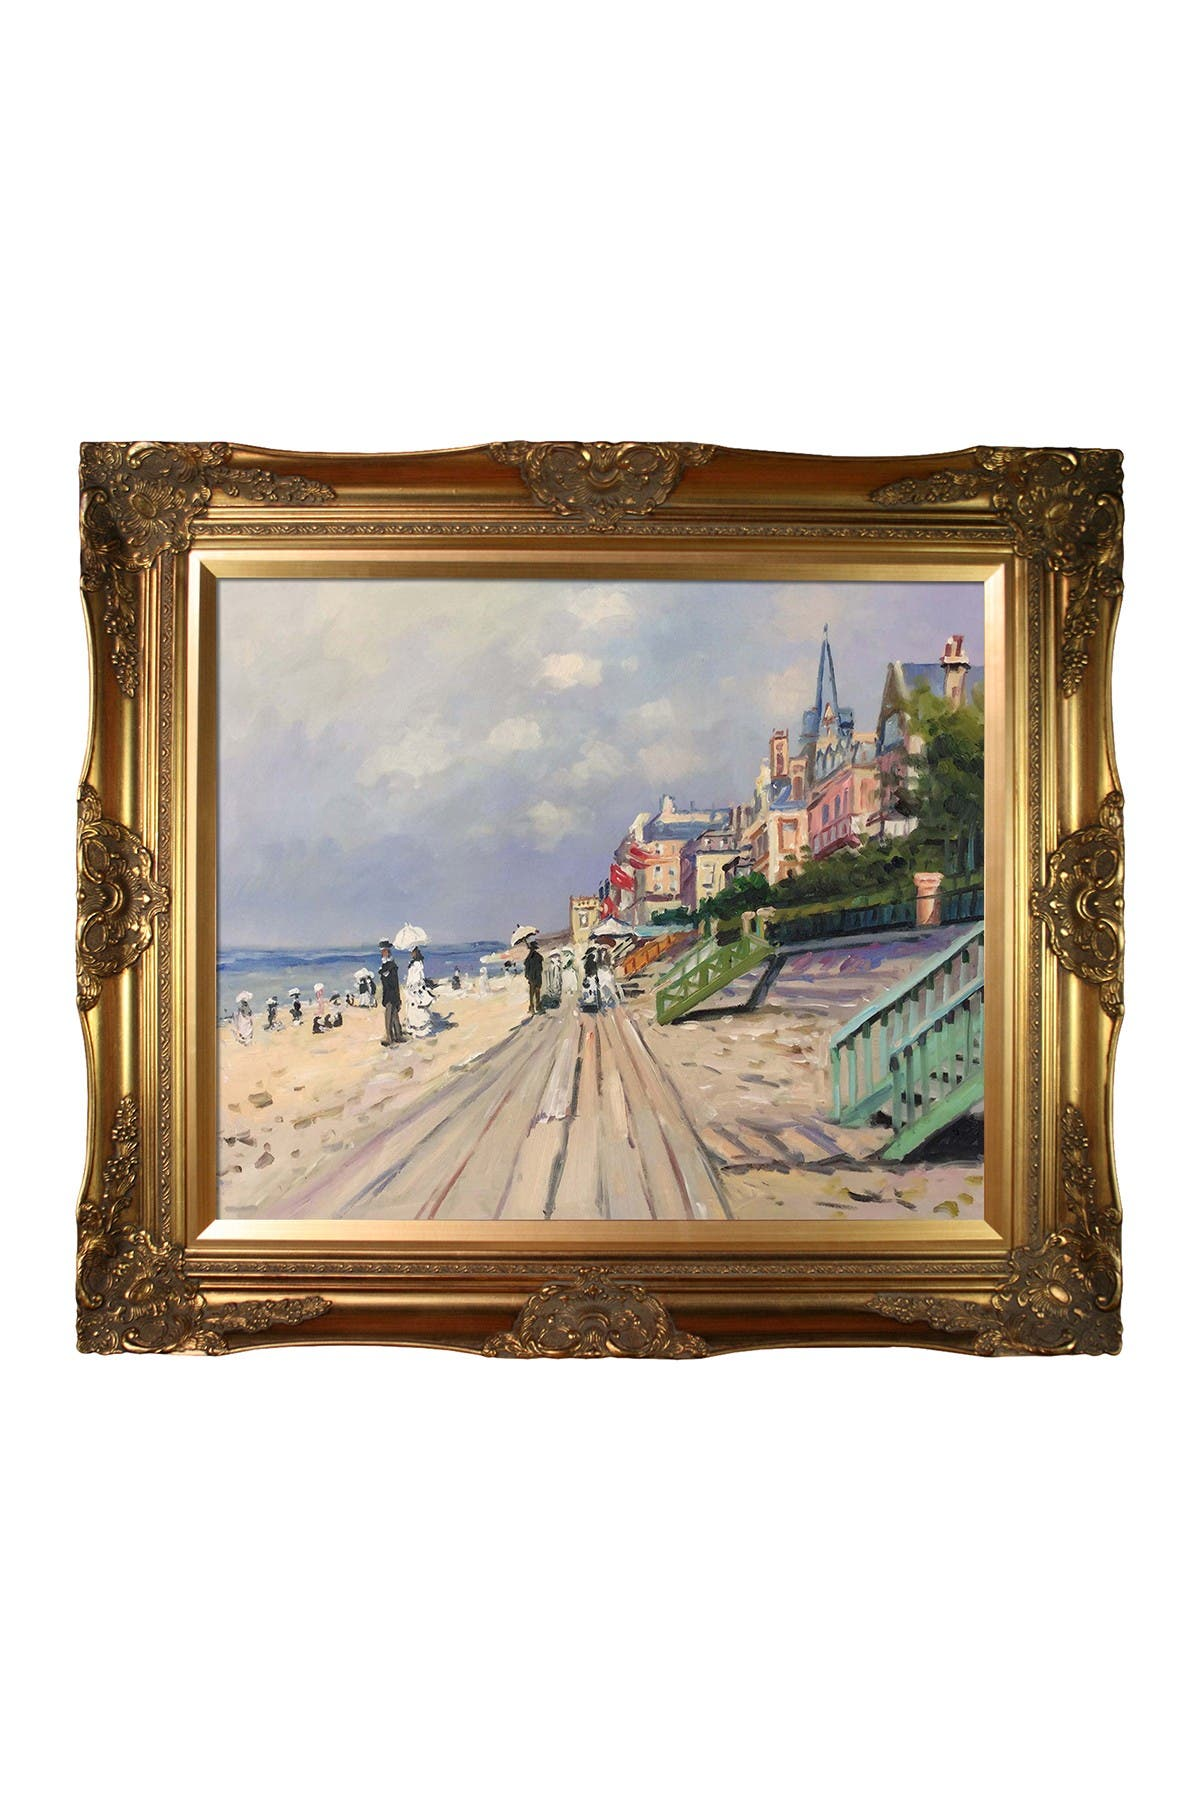 Image of Overstock Art The Boardwalk At Trouville Framed Reproduction Oil Painting